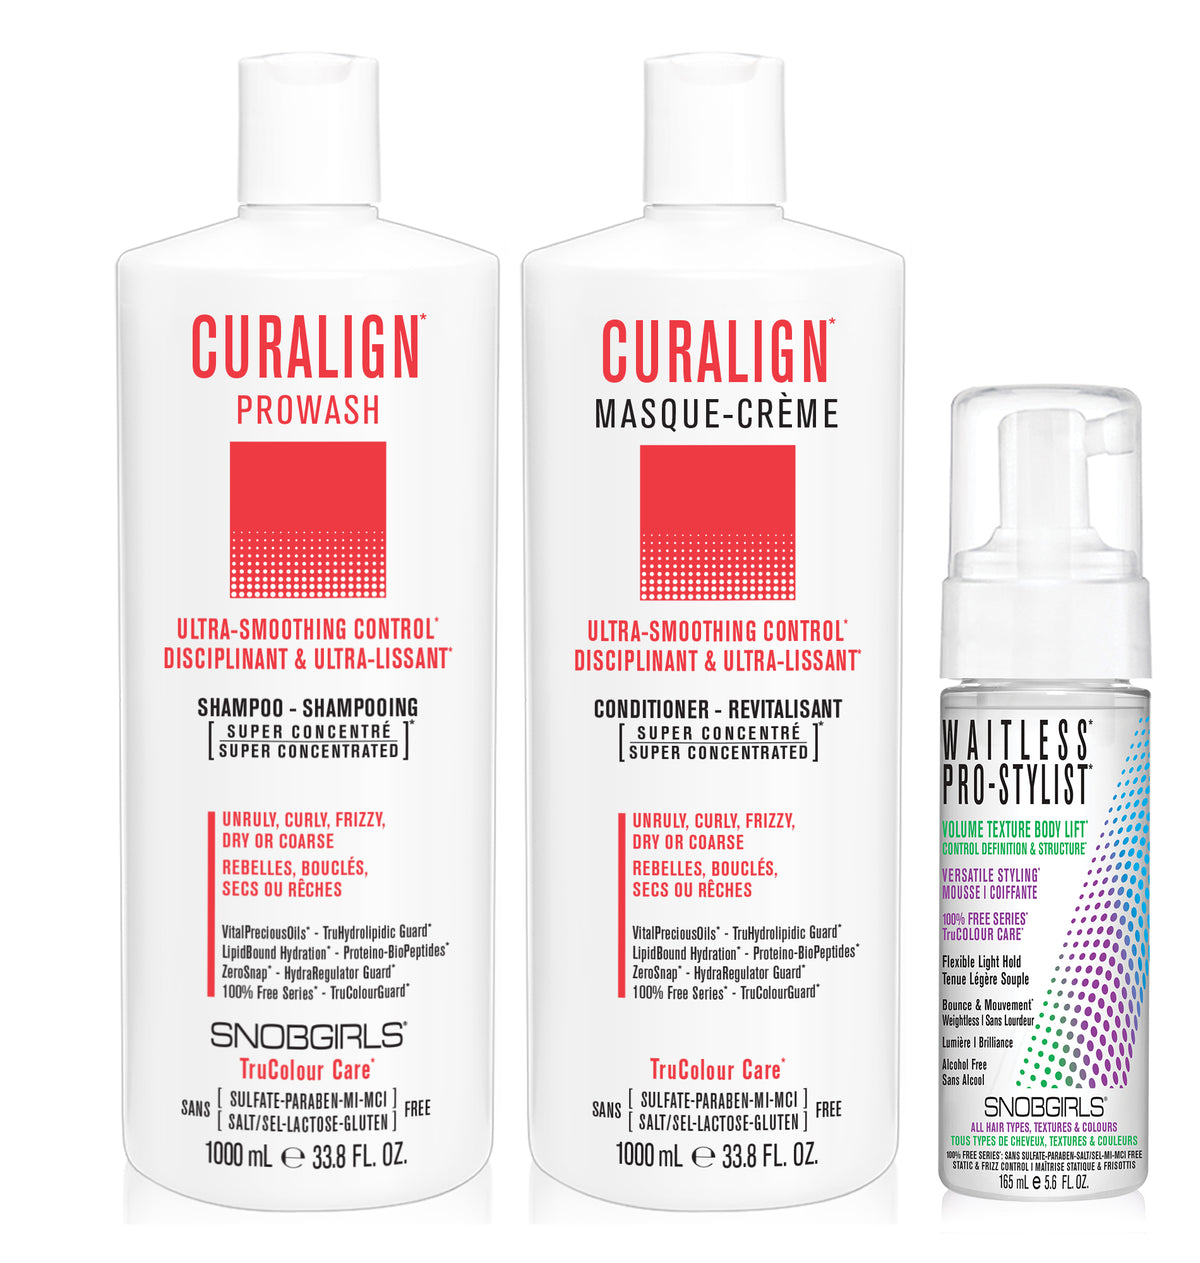 DUO CURALIGN Bundle- 1 Shampoo 33.8oz. with 1 Conditioner 33.8oz and 1 Styling Mousse - SNOBGIRLS.com